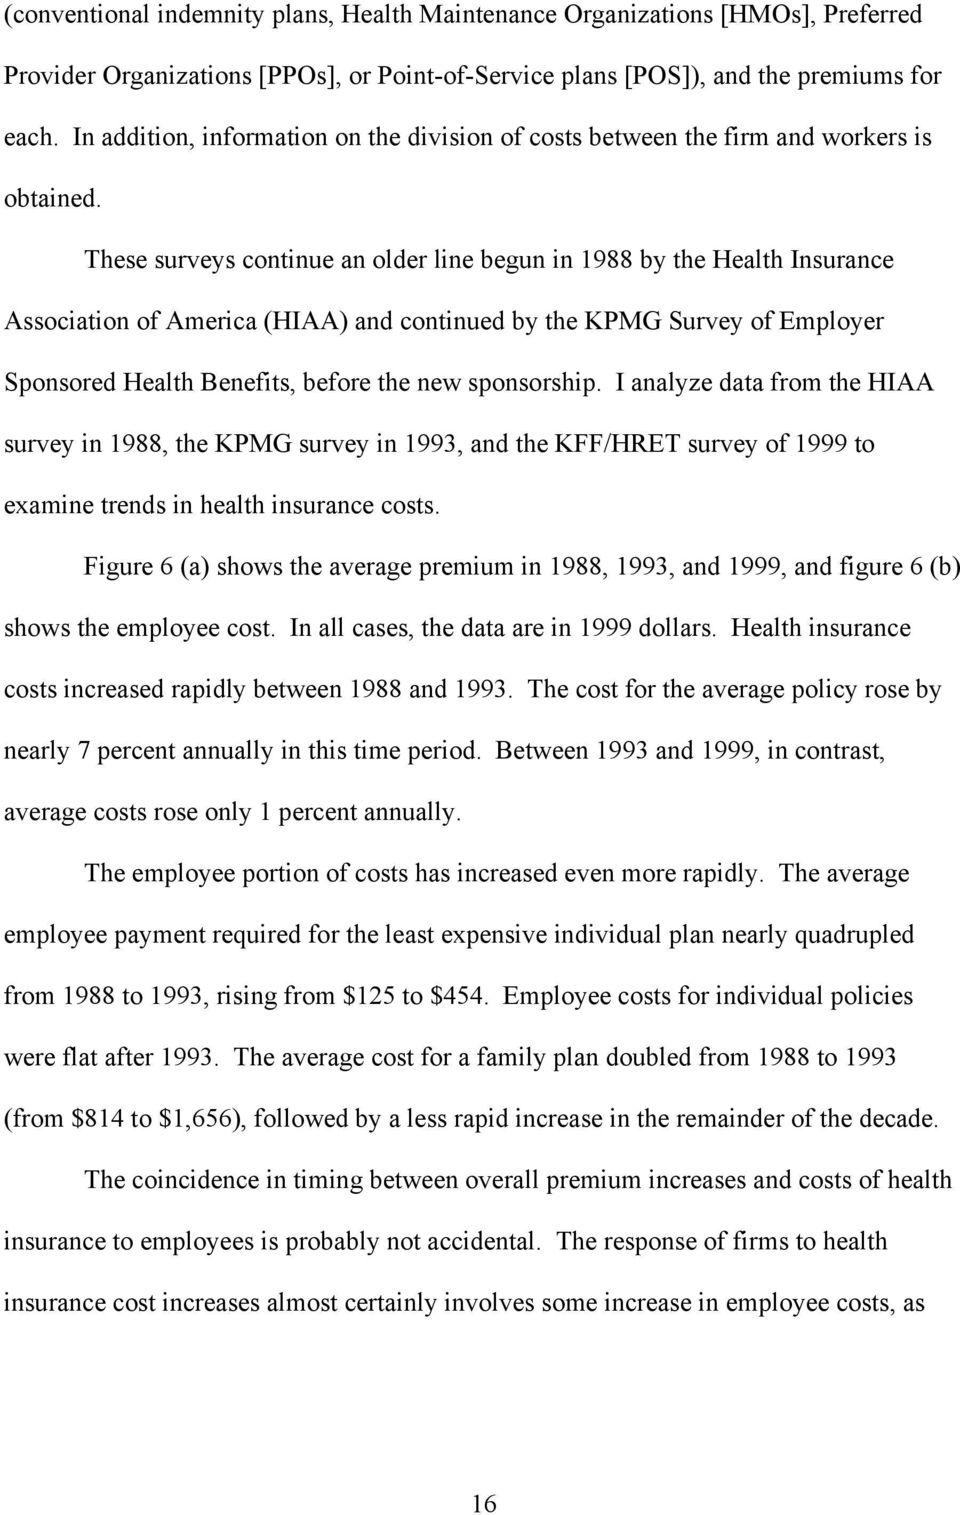 These surveys continue an older line begun in 1988 by the Health Insurance Association of America (HIAA) and continued by the KPMG Survey of Employer Sponsored Health Benefits, before the new